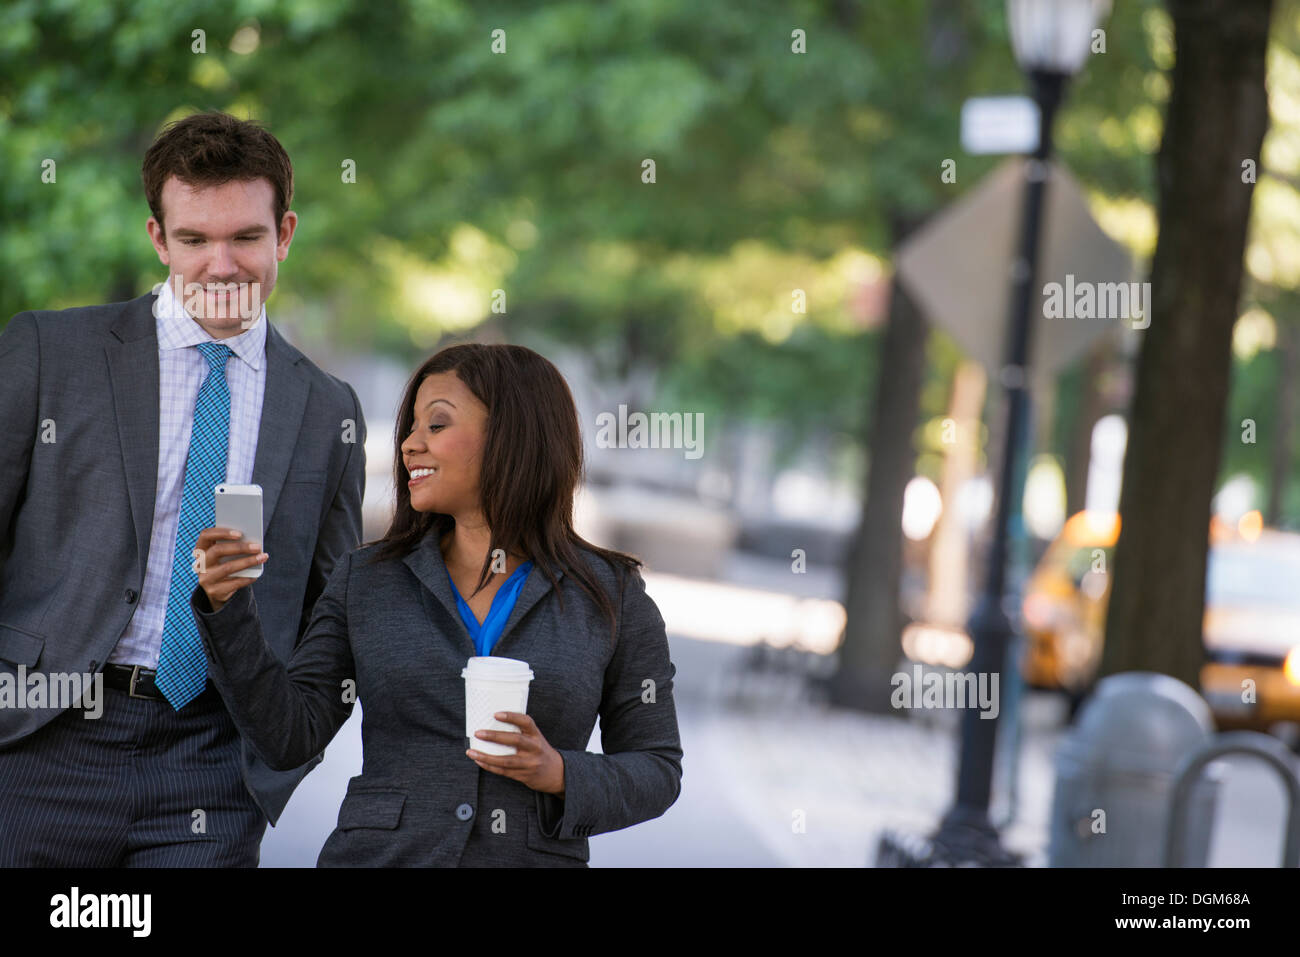 Summer. A young man in a grey suit and blue tie walking with a woman in a suit. White man, black african american woman - Stock Image